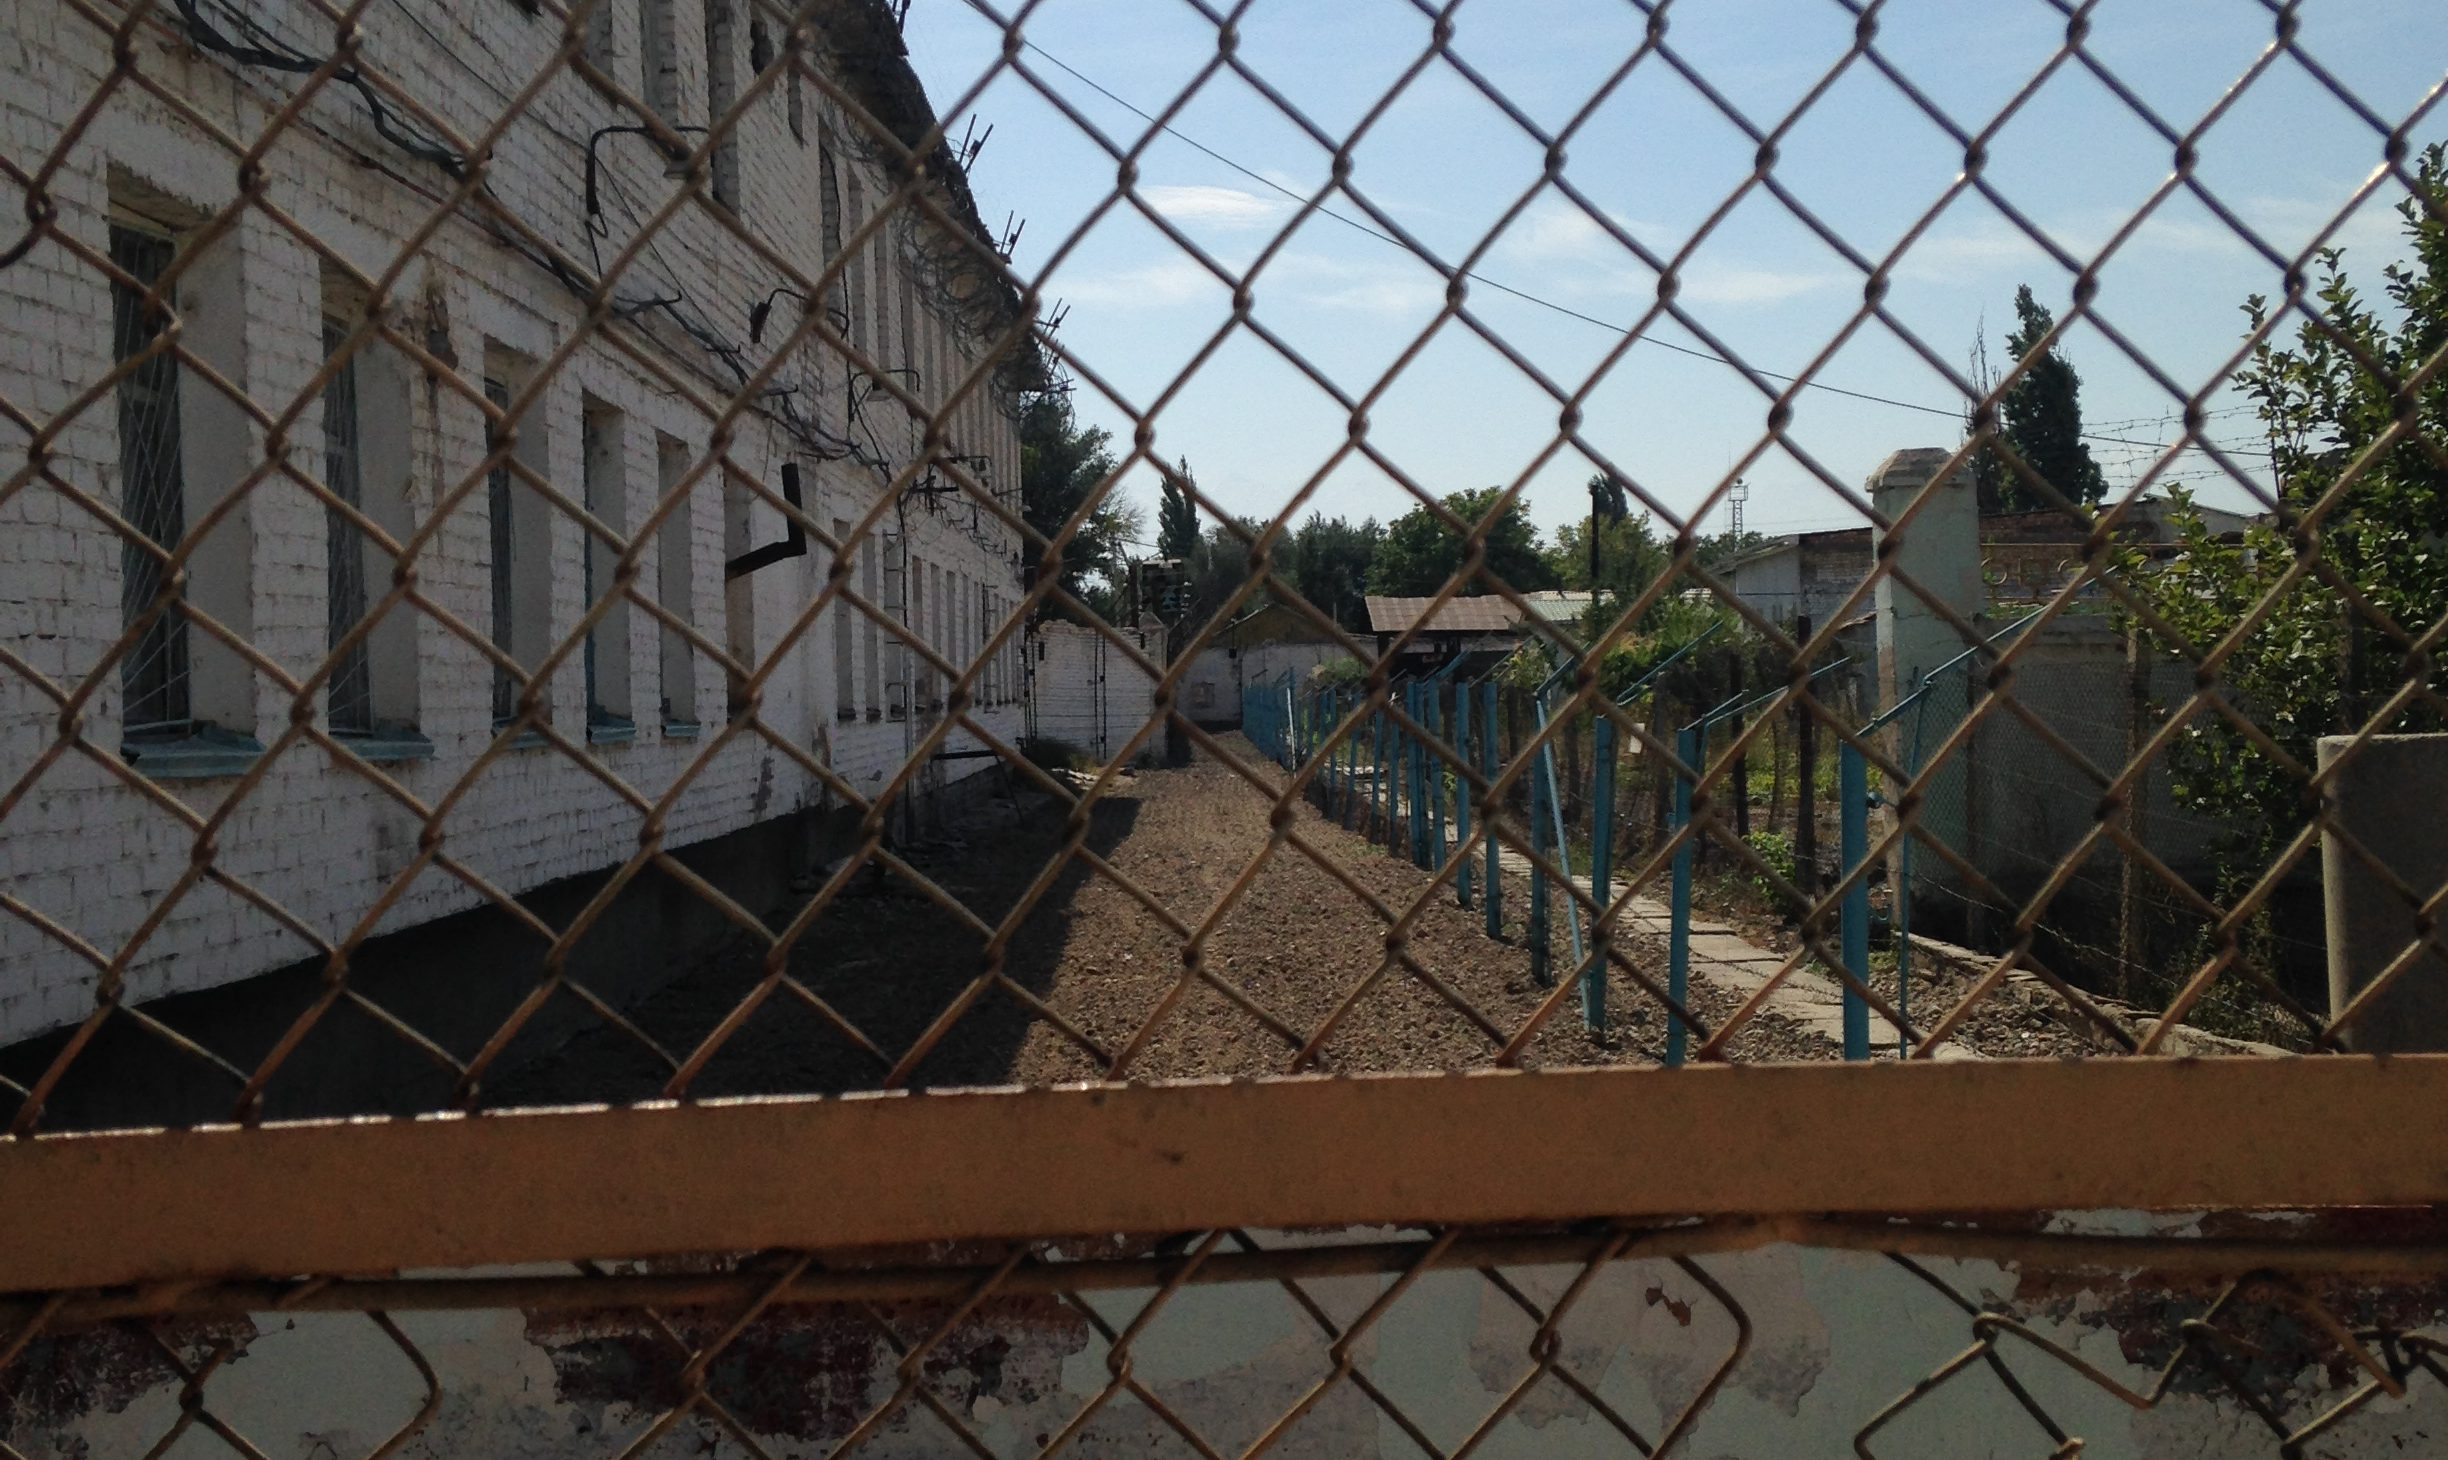 a photo of a bleak yard through chain link fence